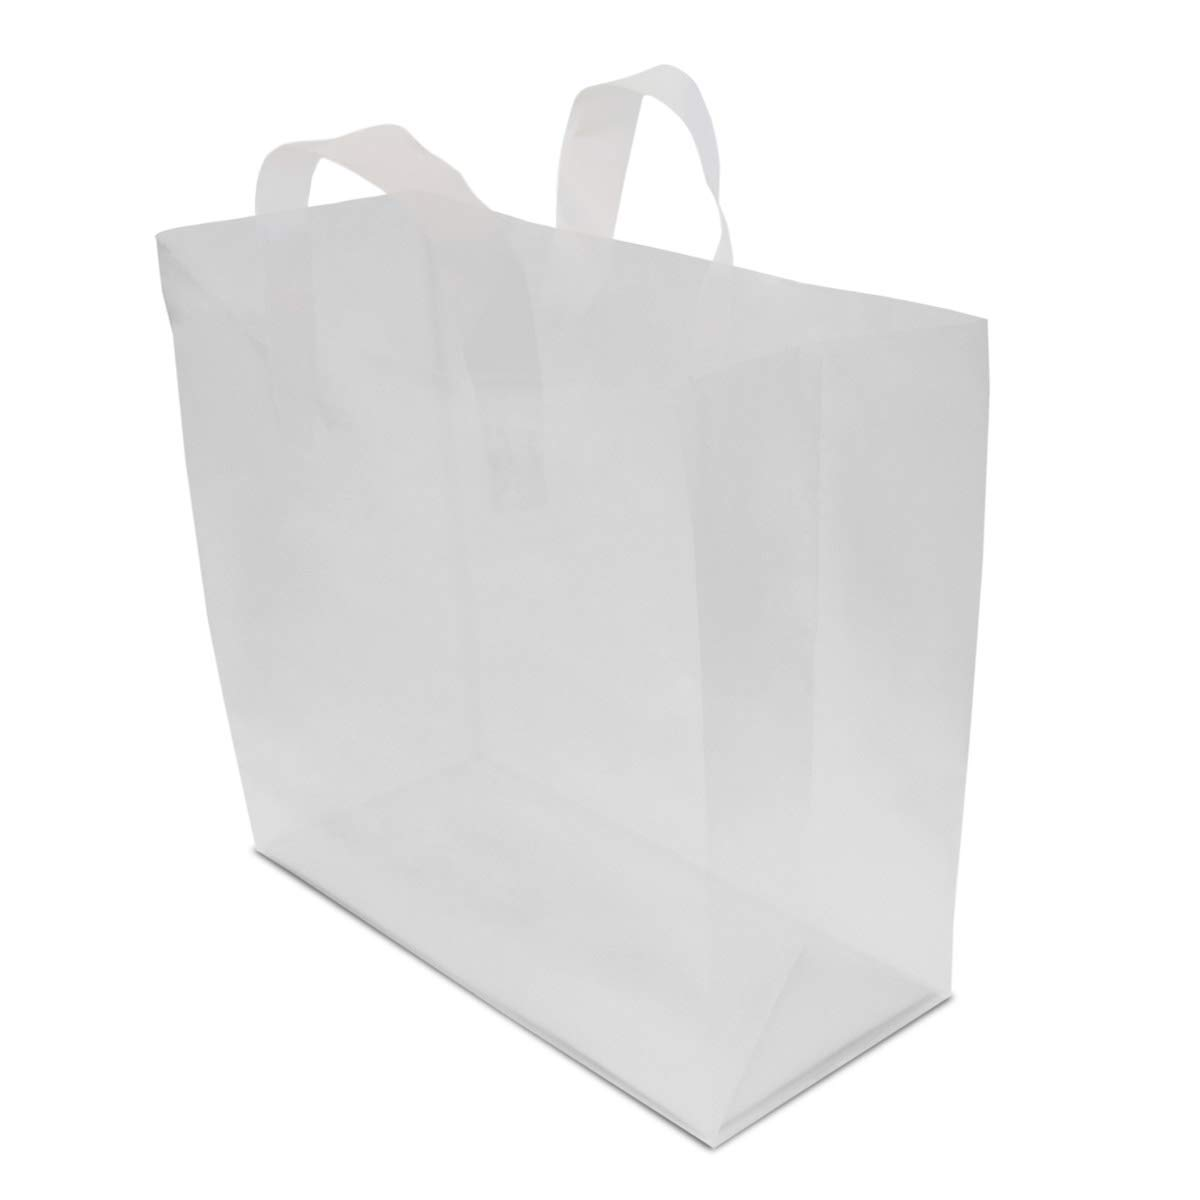 16x6x12'' 100 Pcs. Large Frosted Clear Plastic Gift Bags with Handles, Shopping Bags, Take Out Bags with Cardboard Bottom, Bags in Bulk